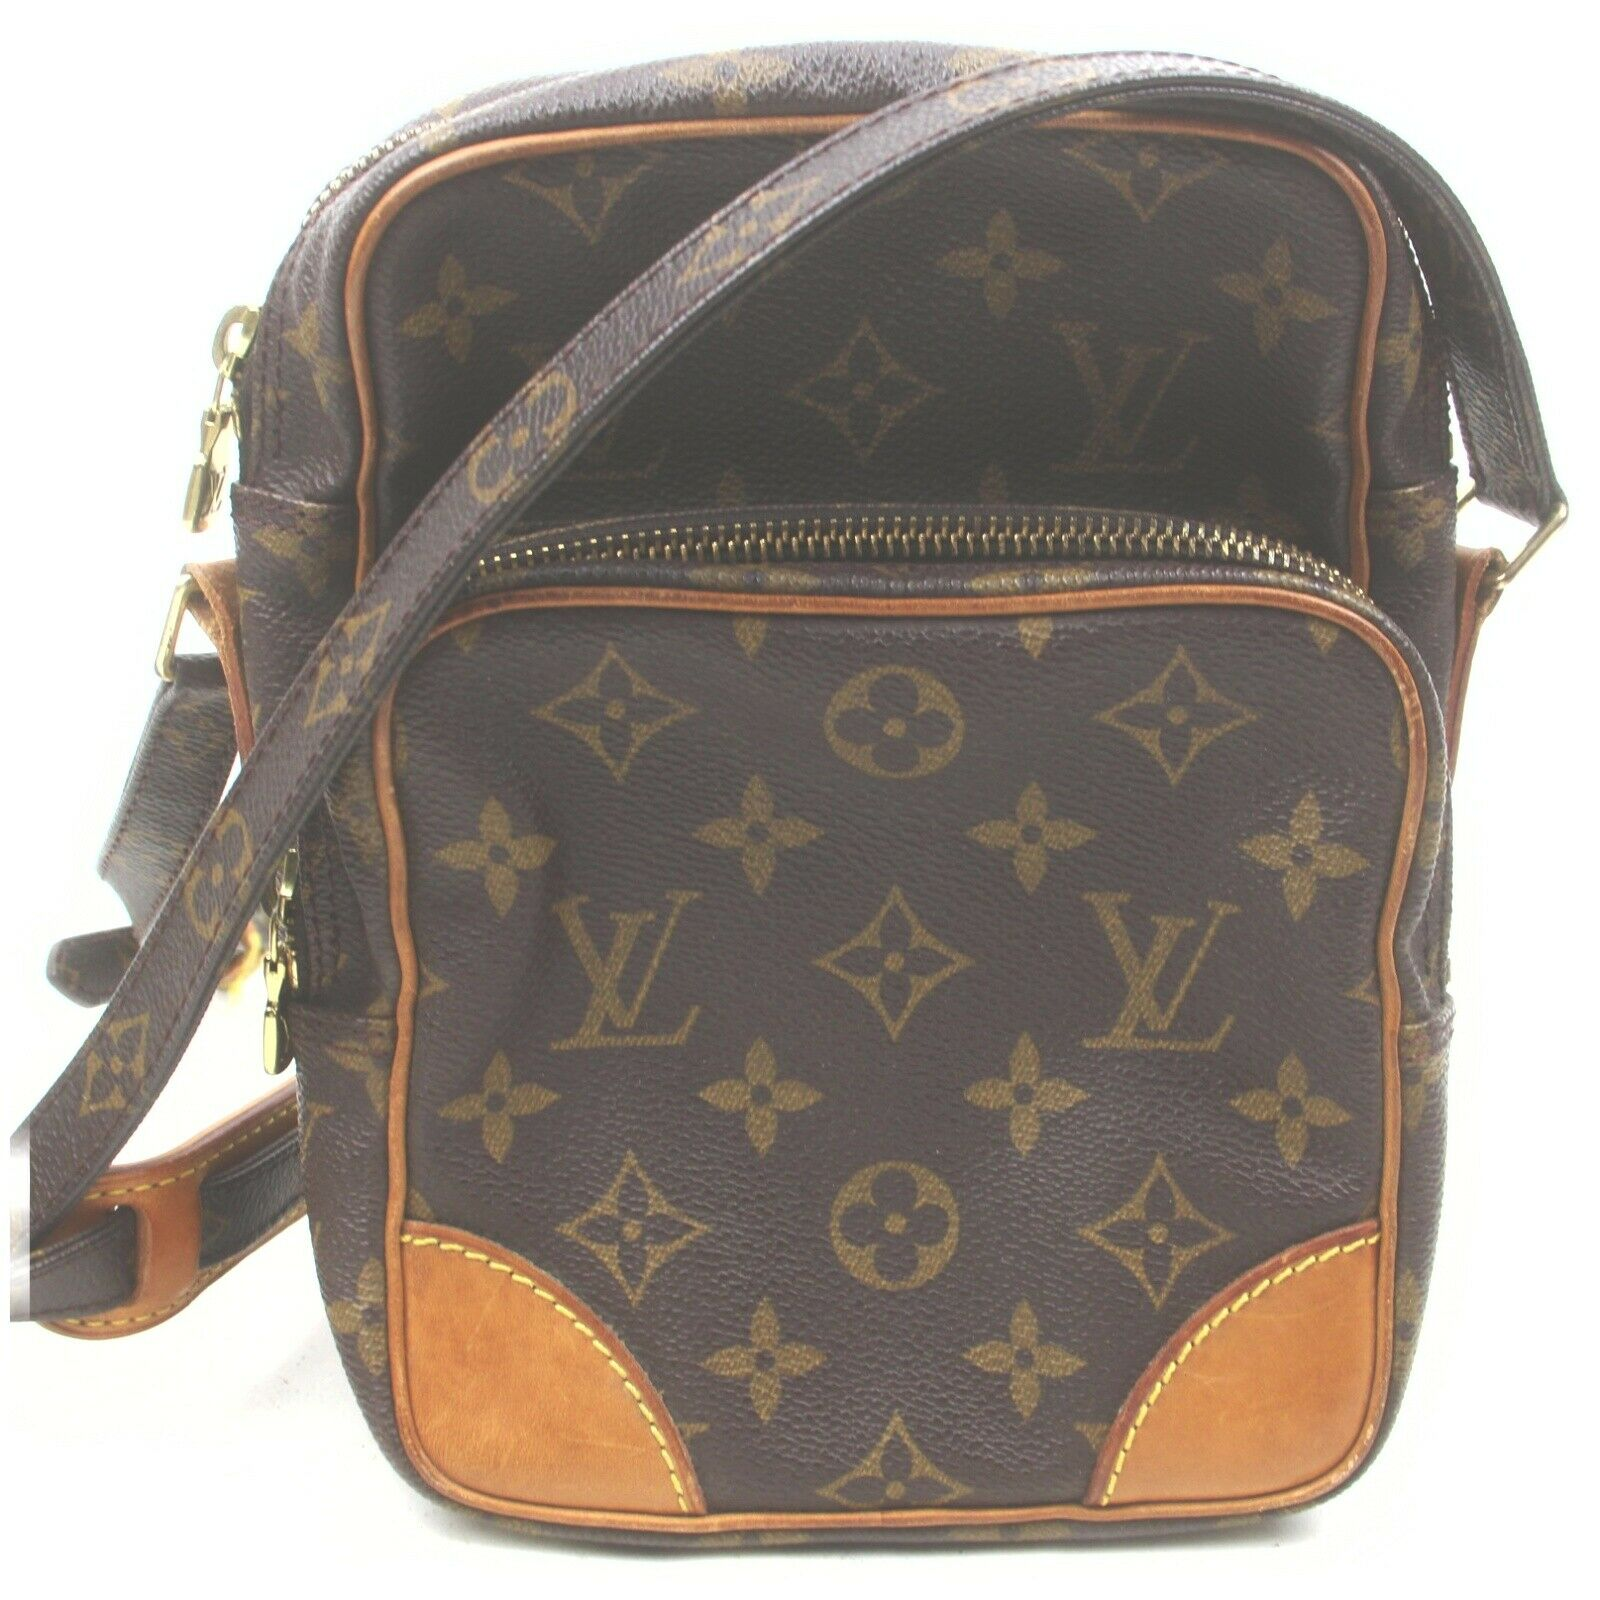 Louis Vuitton Amazon M45236 Brown Monogram Shoulder Bag 11561